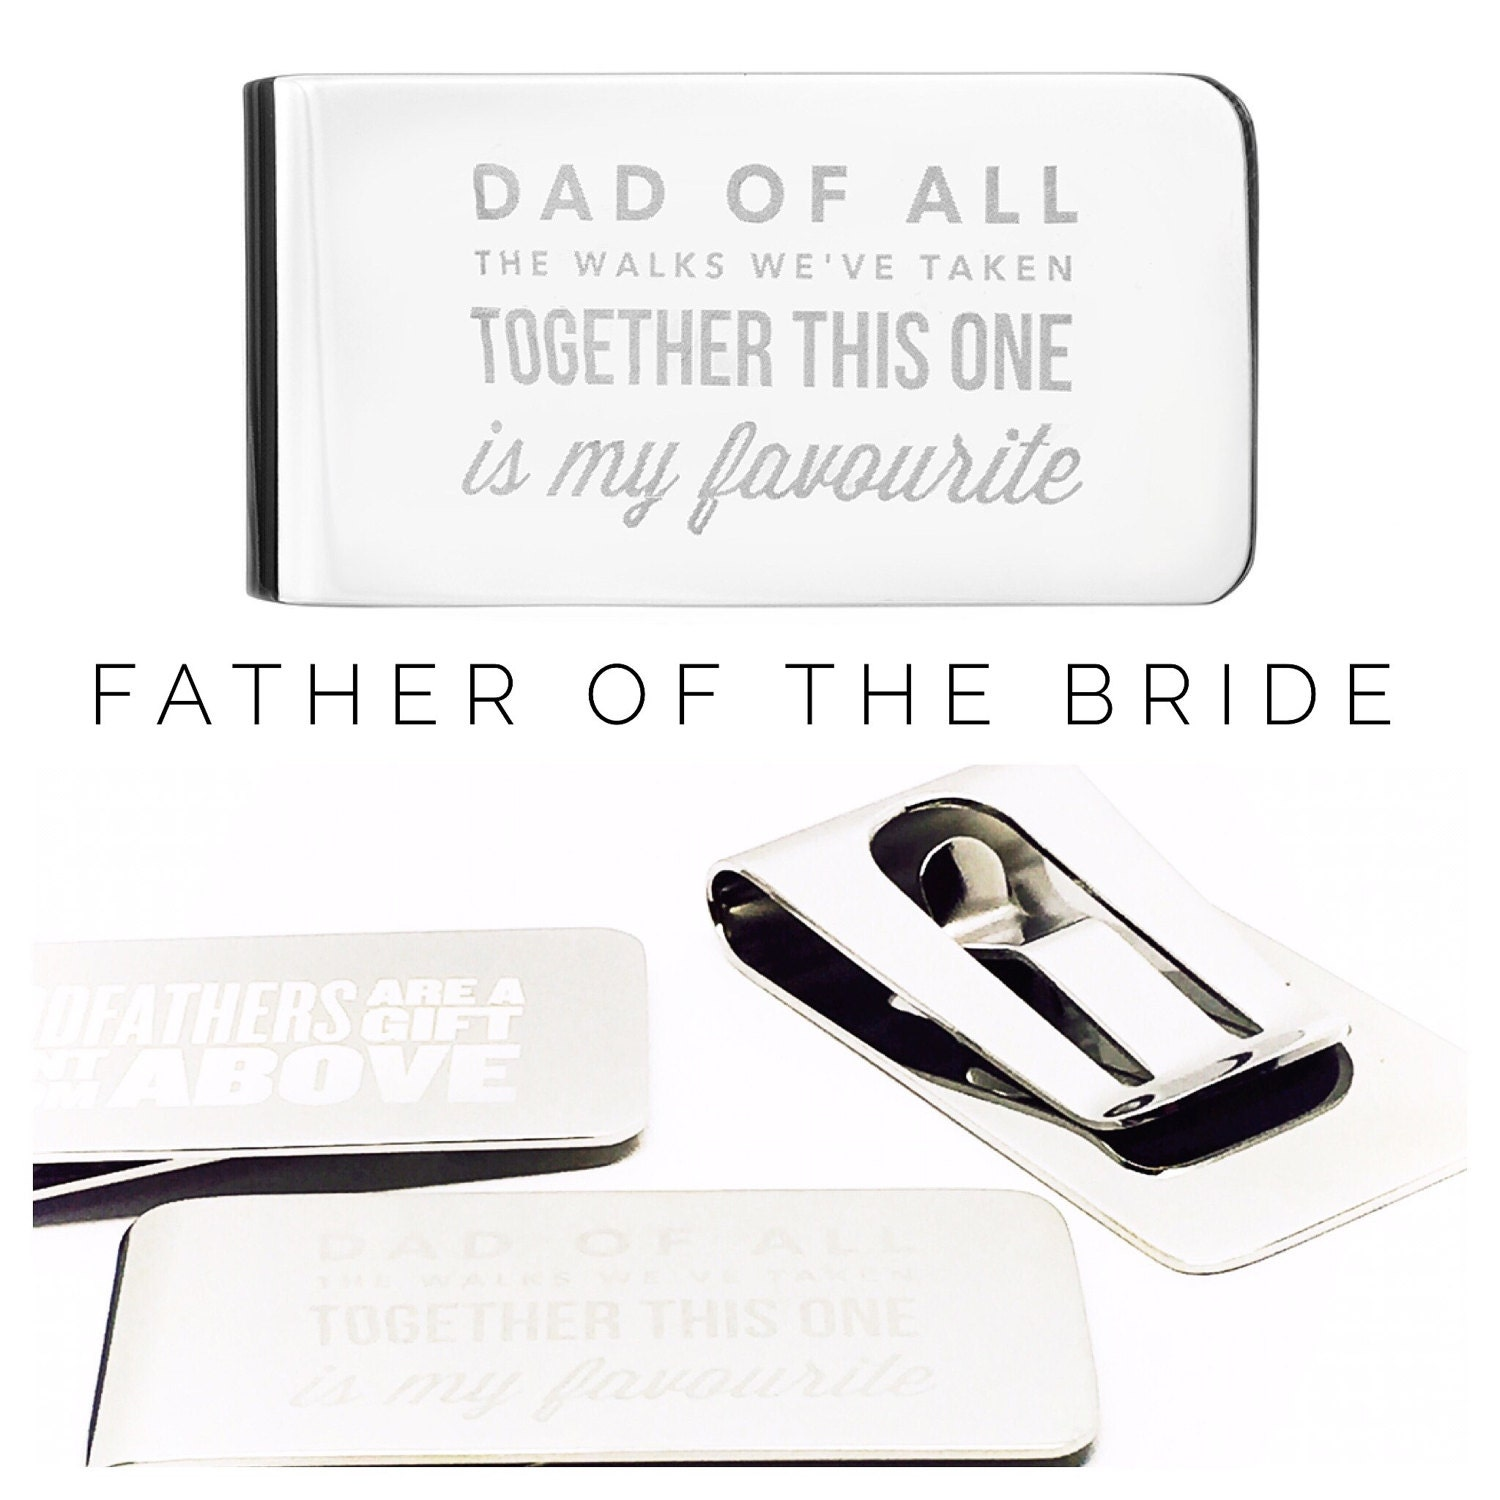 Father of the Bride Gift  Personalised Money Clip  Wedding Gift  Personalized Money Clip (W254)